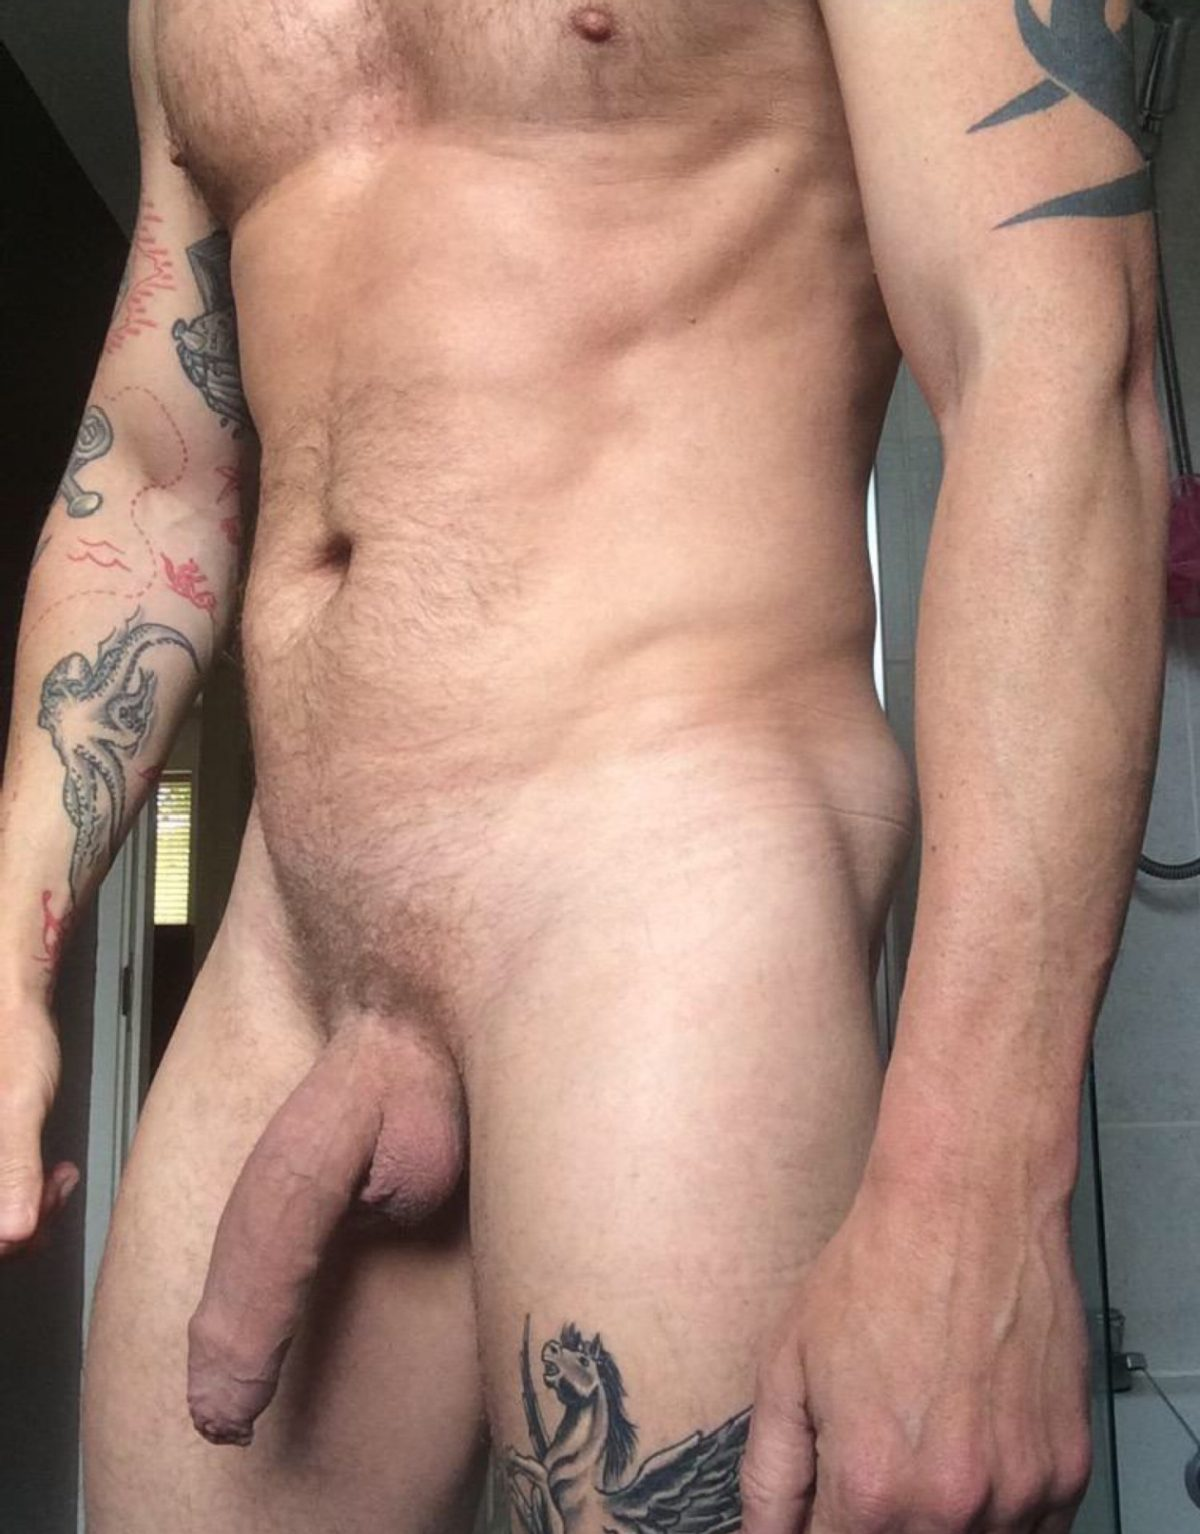 Nude Man With A Big Soft Uncut Cock